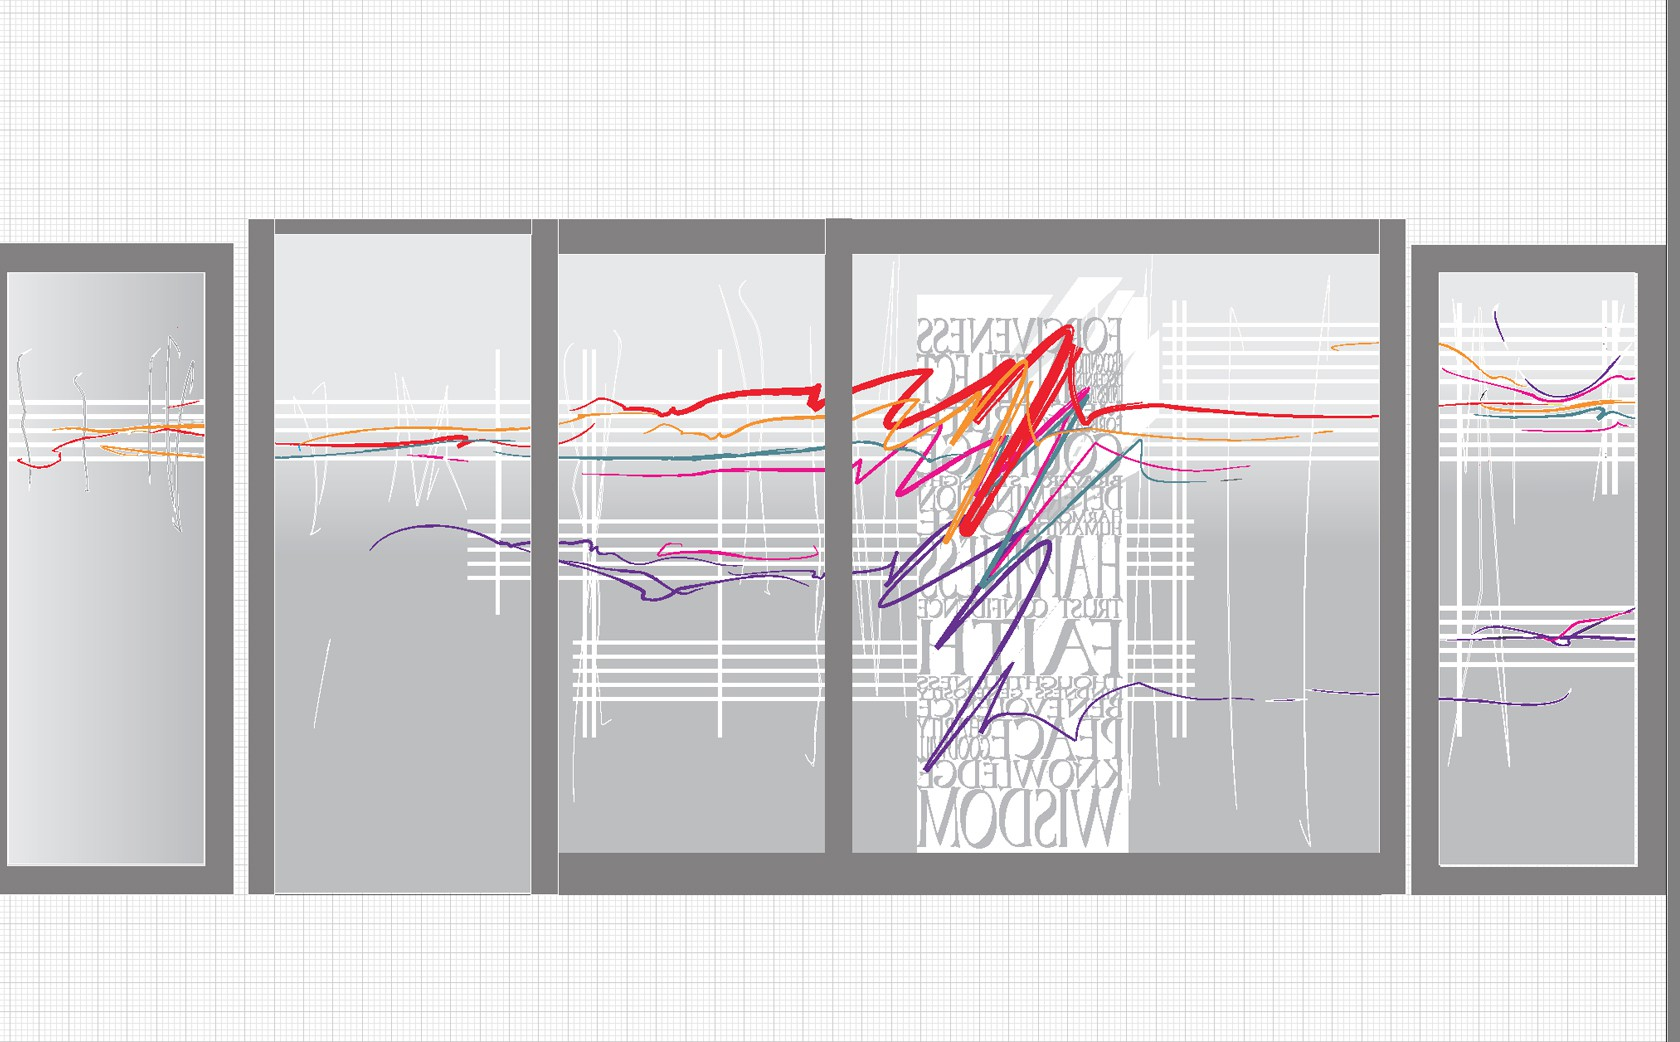 Design stage. 'counterpoint' developing within architecture & music on glass doors and screens. 7 gold hues used.